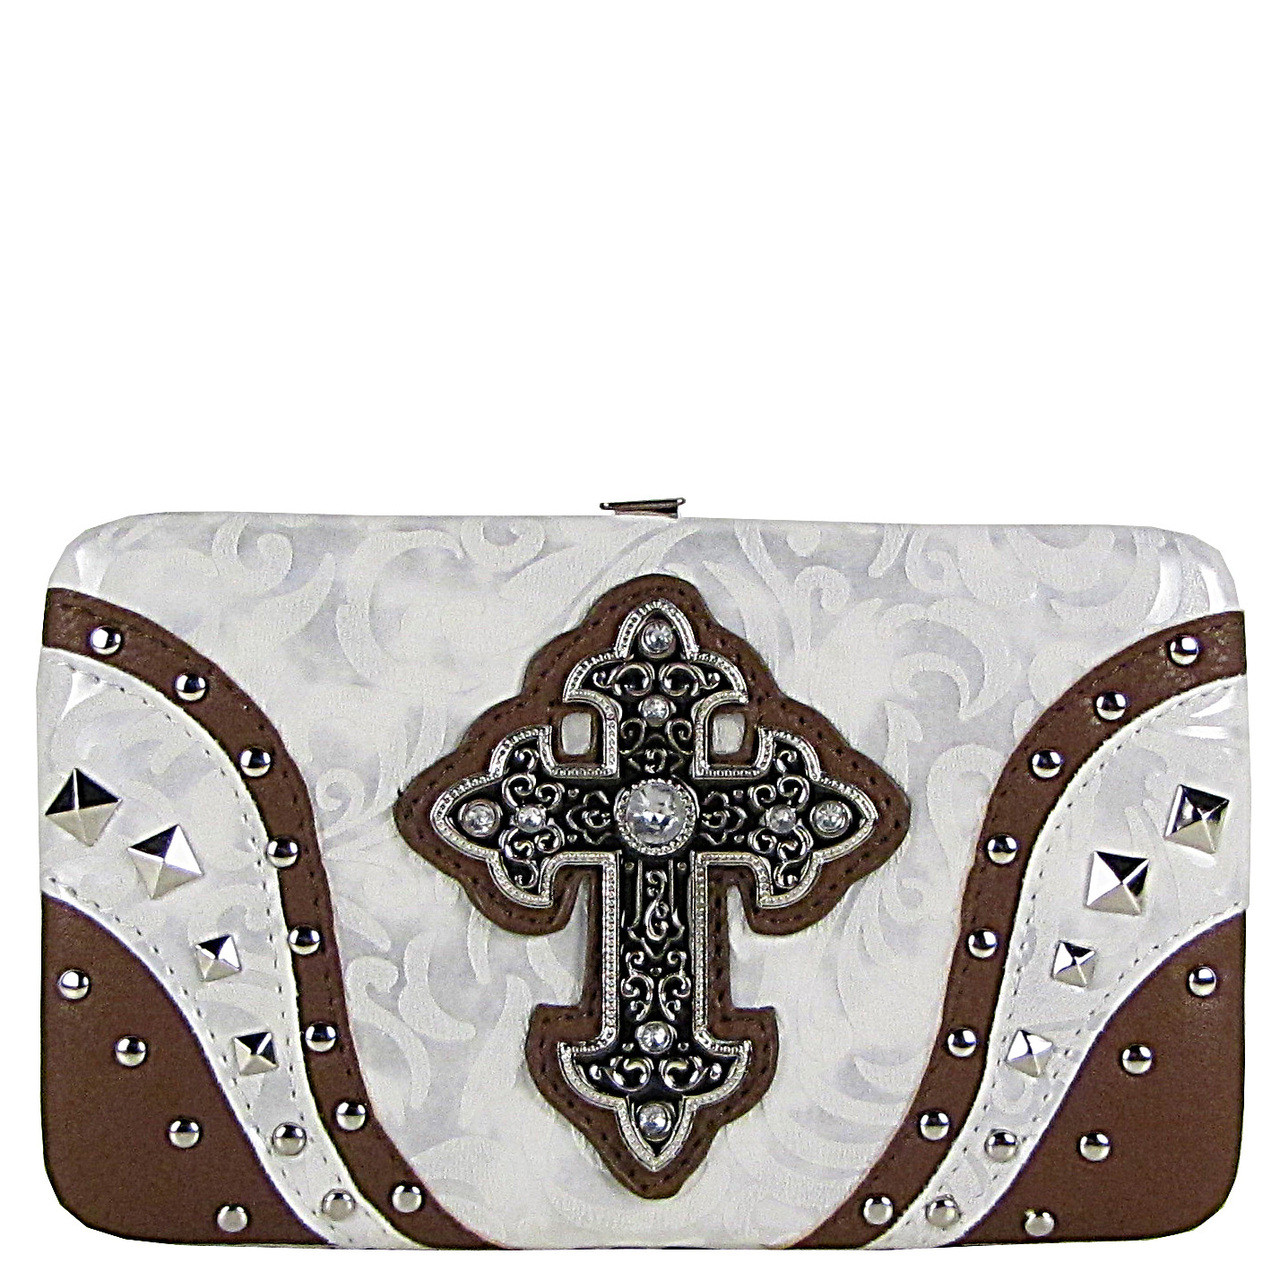 WHITE STUDDED RHINESTONE TOOLED CROSS LOOK FLAT THICK WALLET FW2-04113WHT